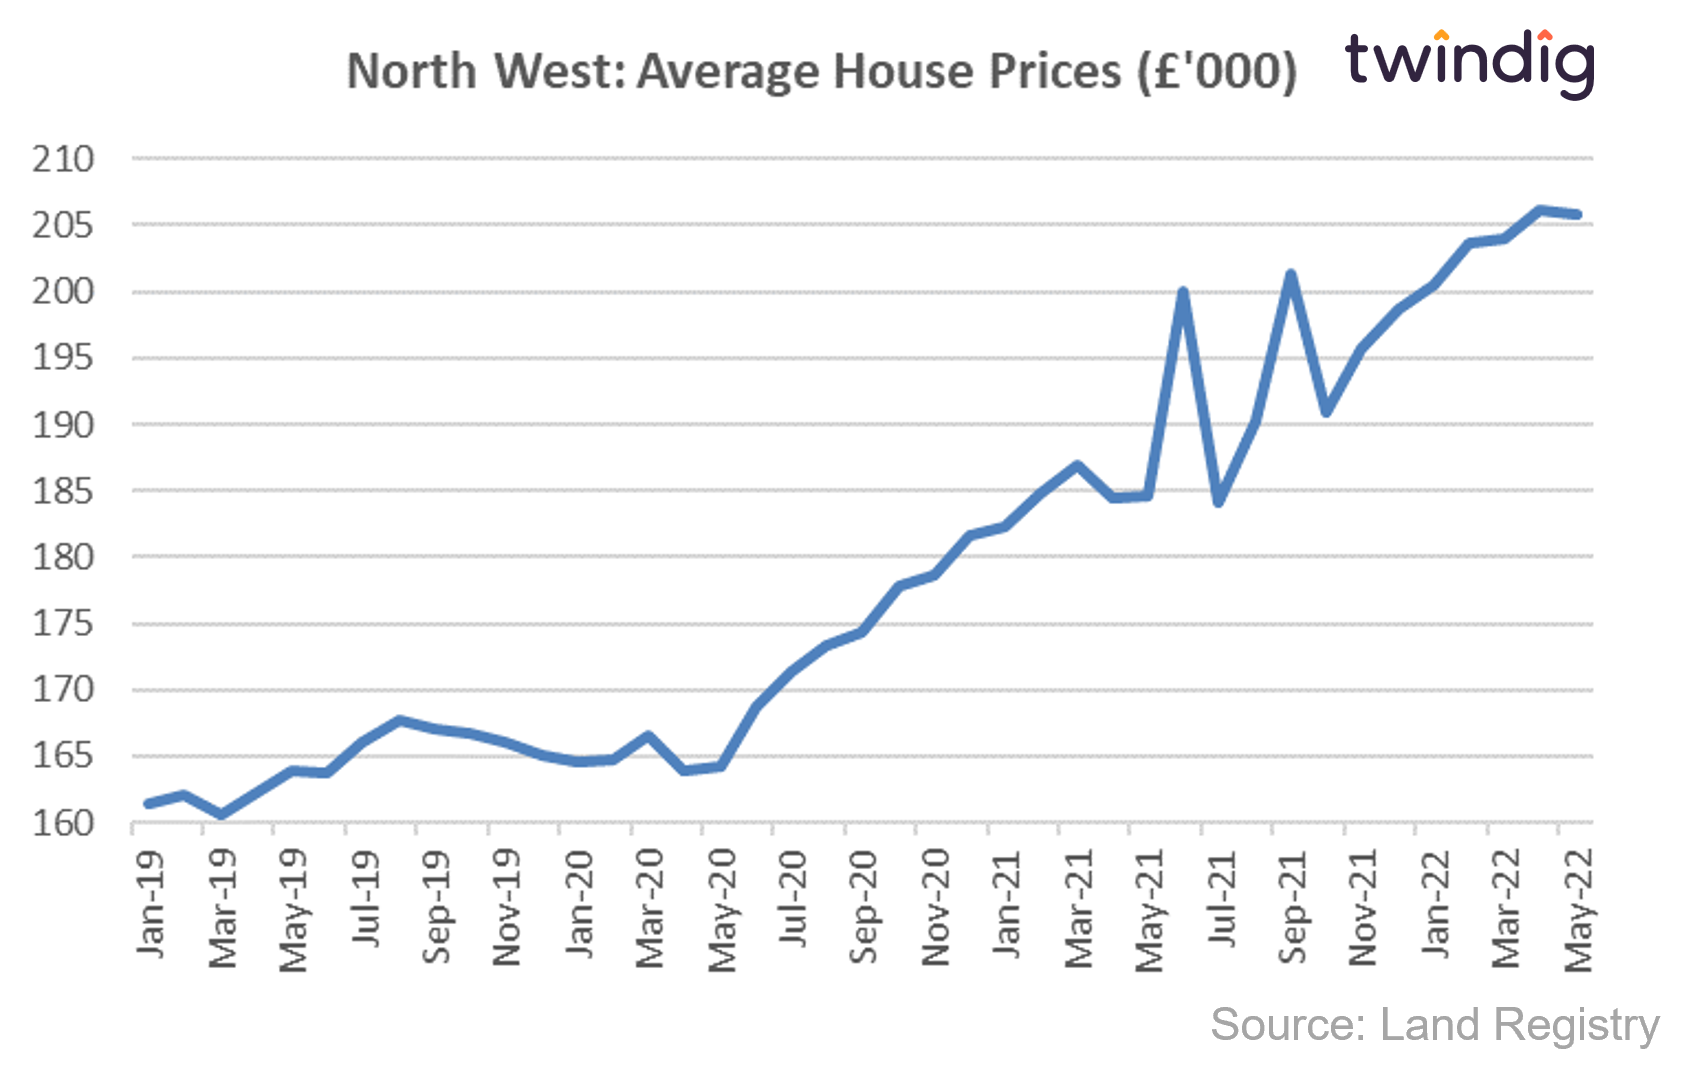 house price chart graph showing average house prices in the North West